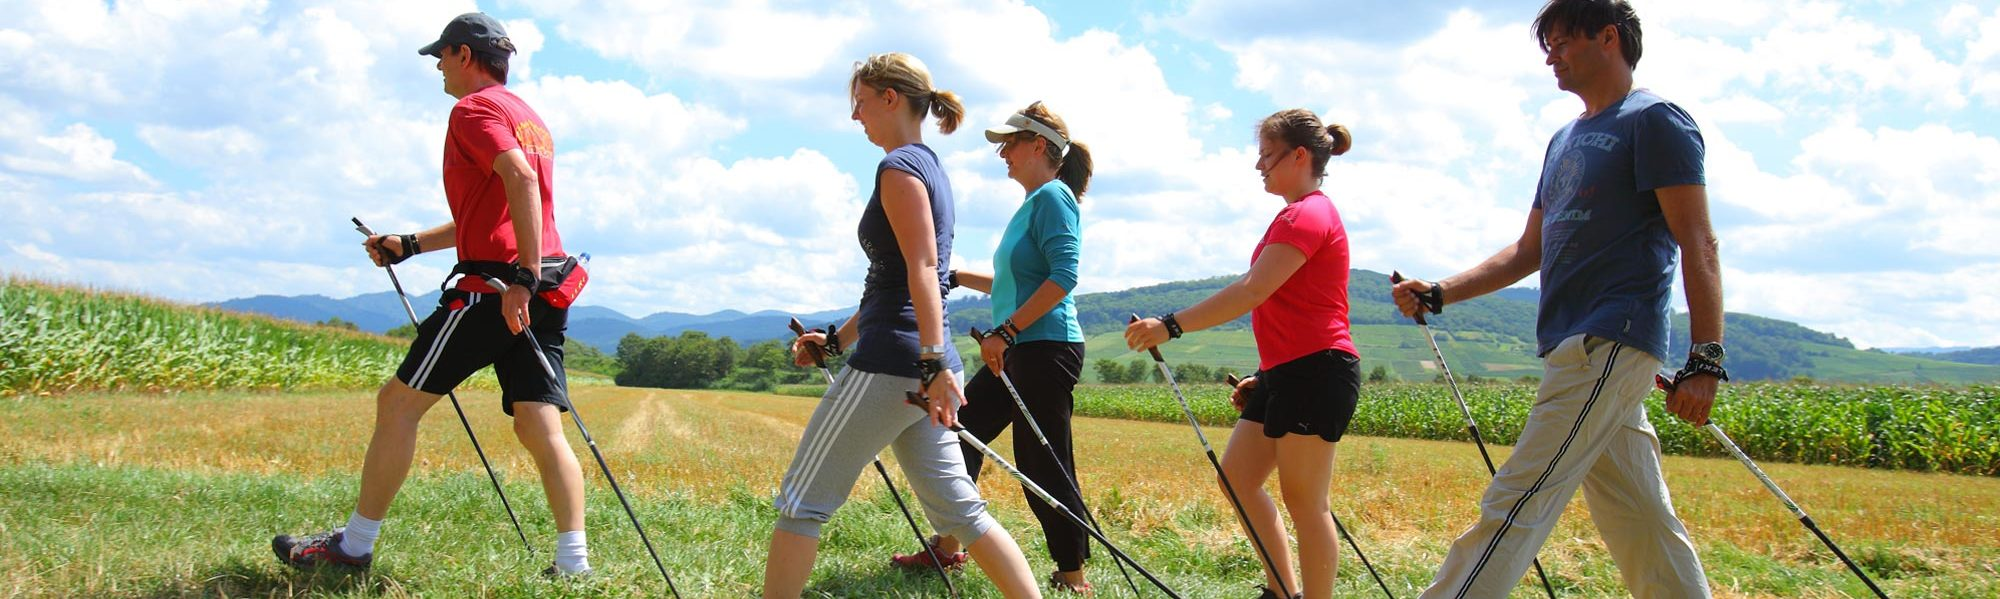 Patientengruppe beim Nordic Walking